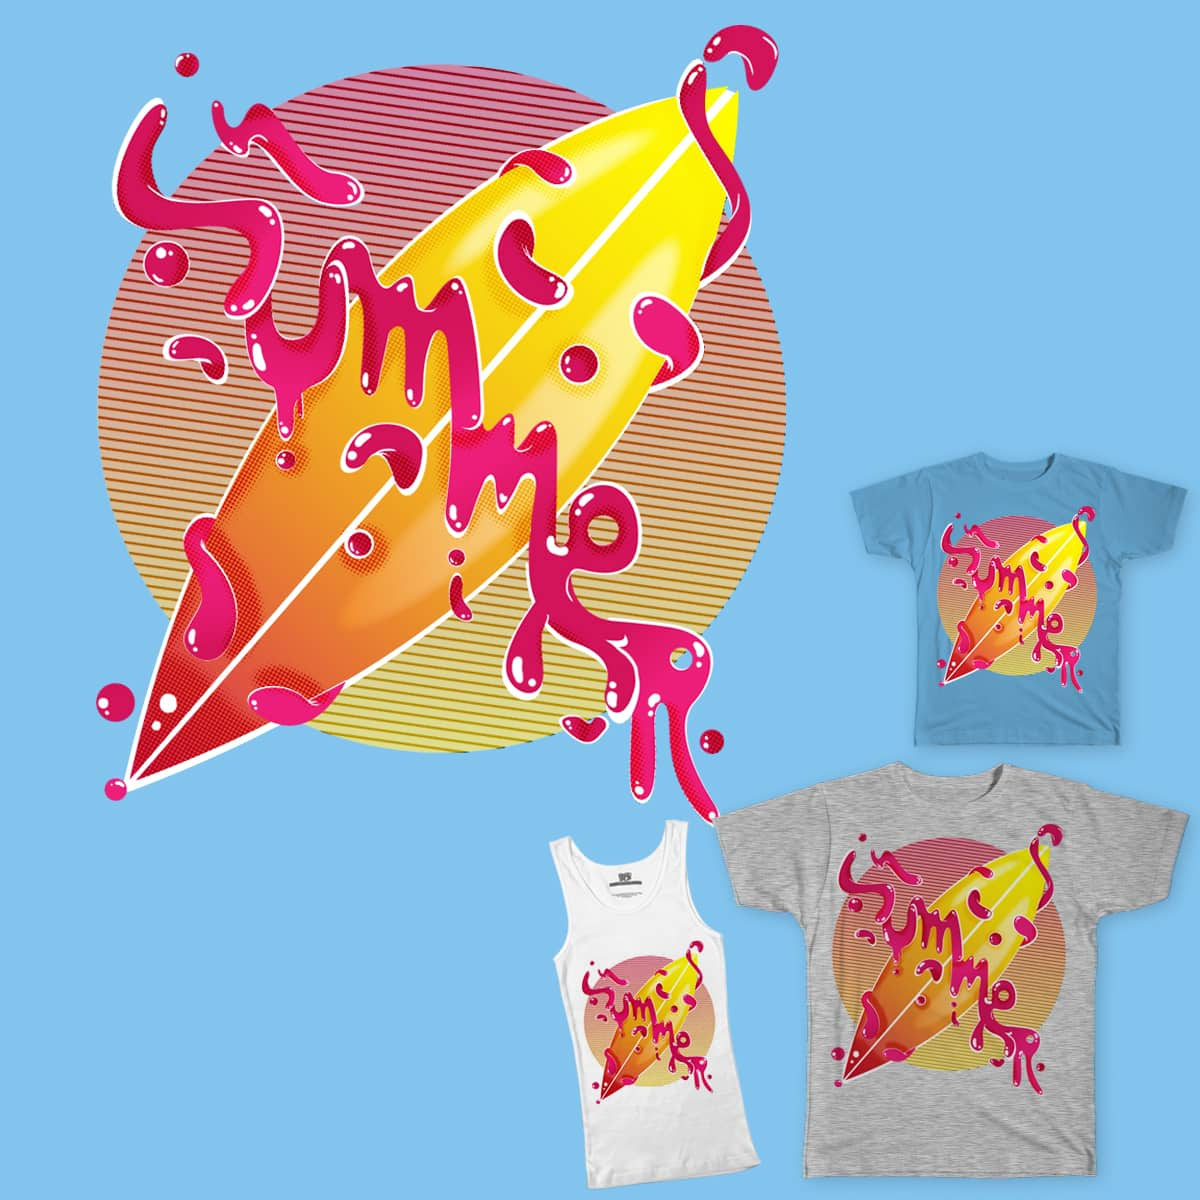 Sweet Summer by JoniWaffle on Threadless